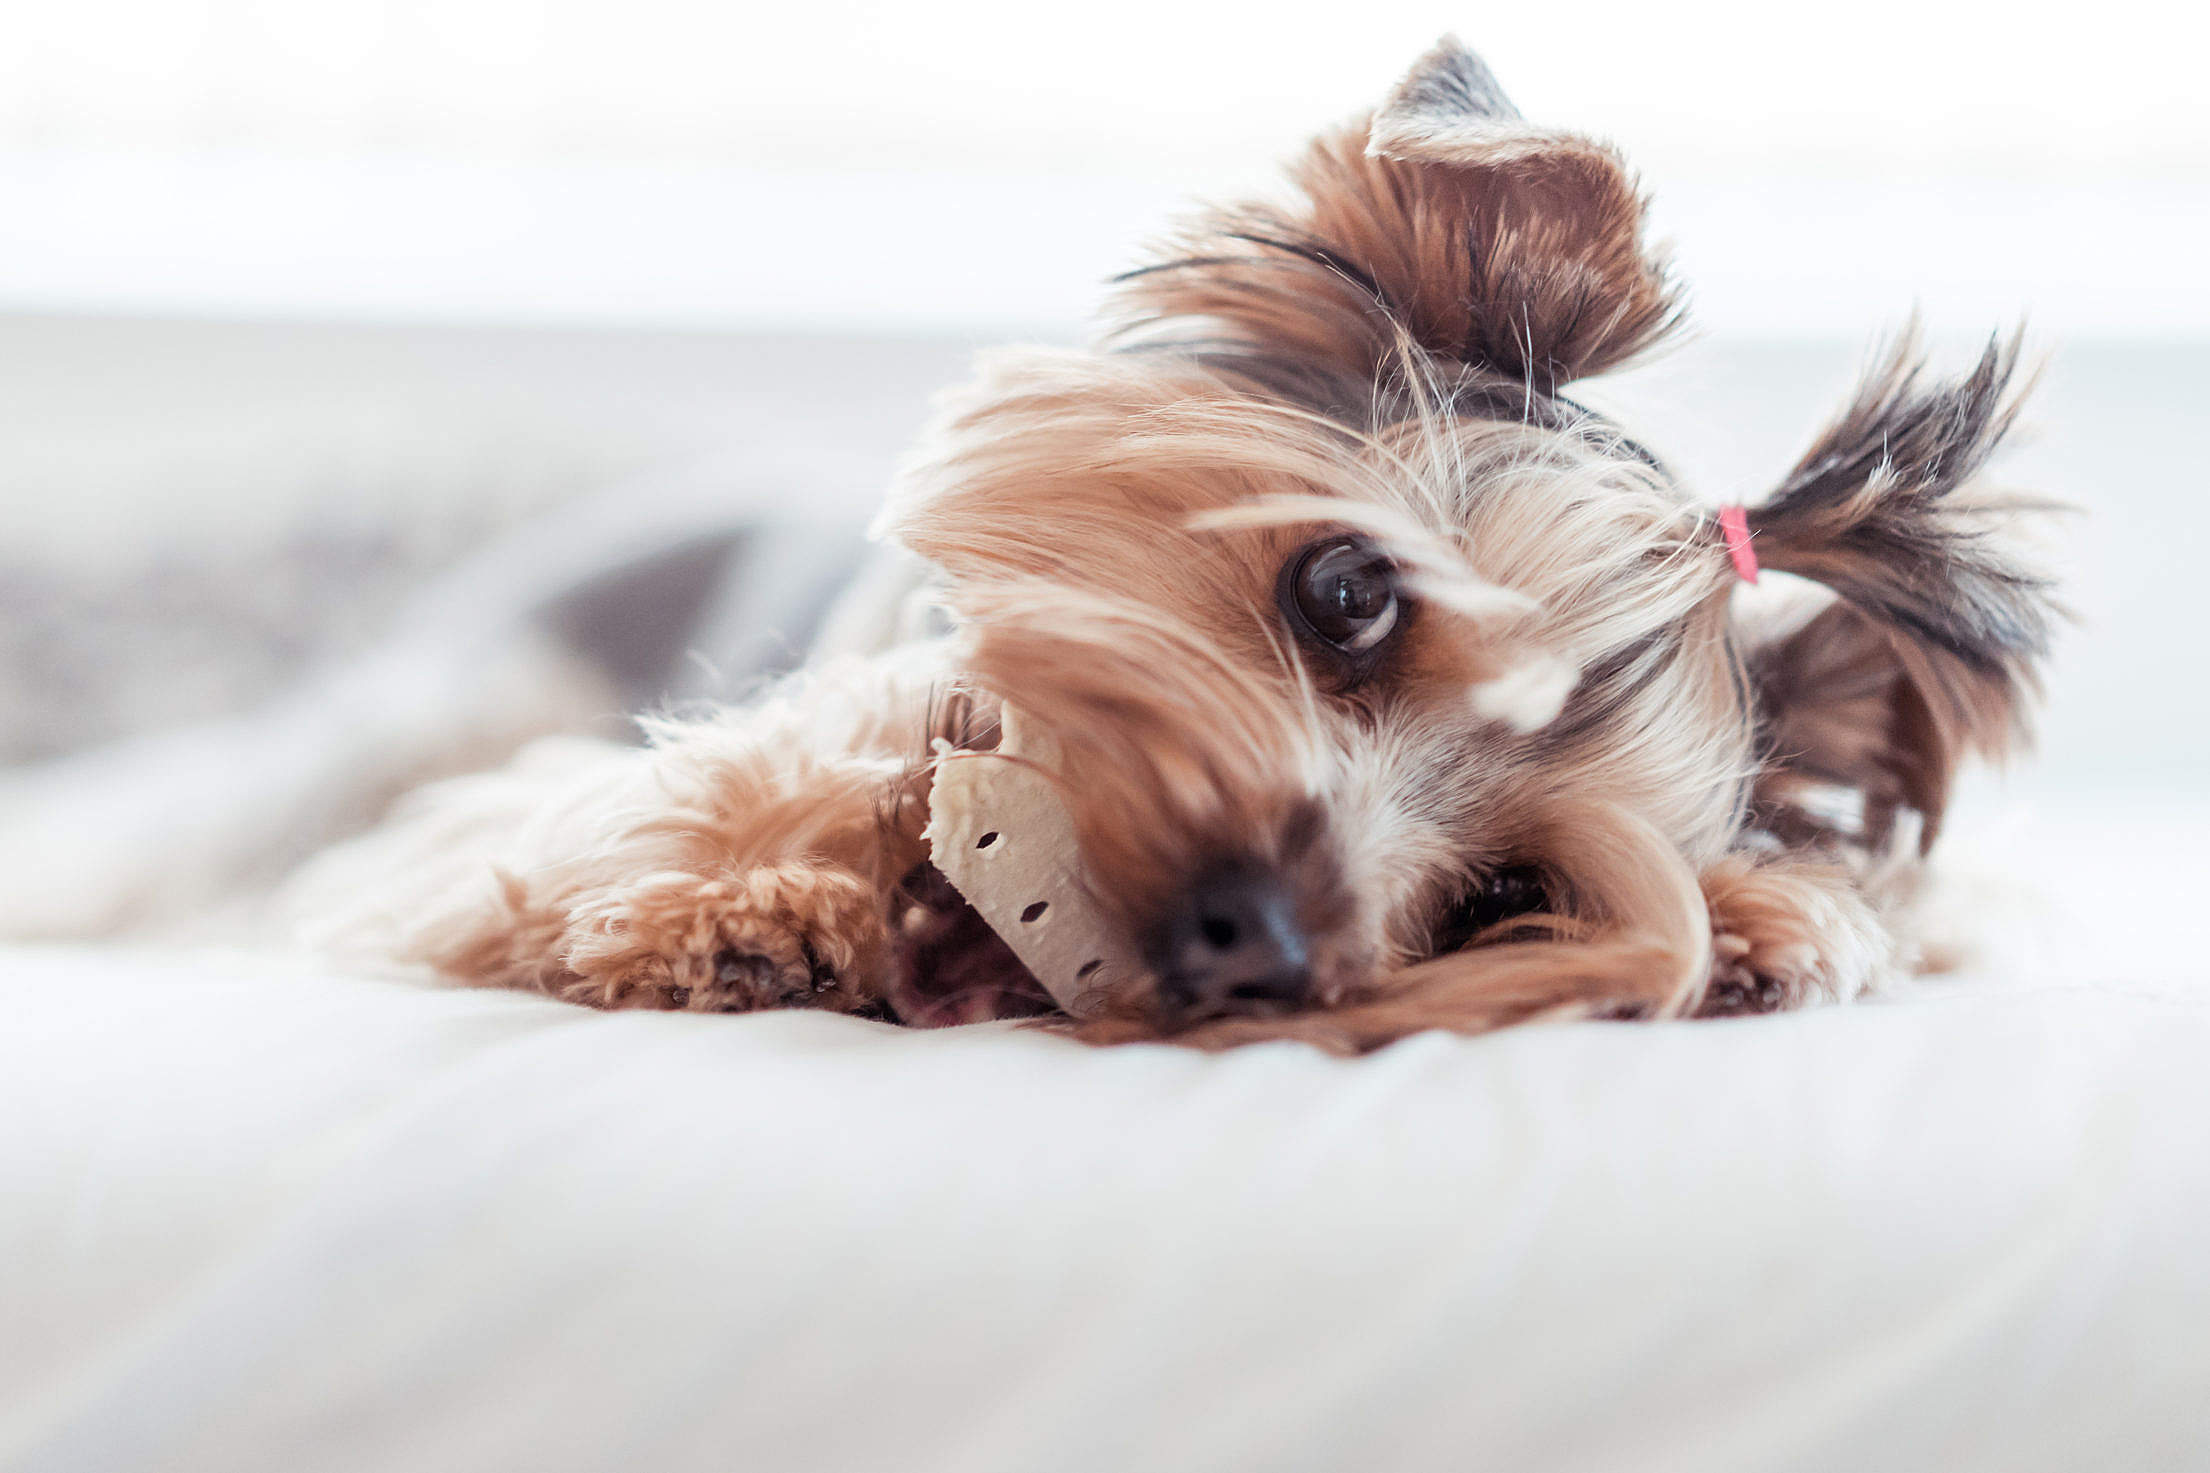 Yorkshire Terrier Eating Treats in Bed #2 Free Stock Photo